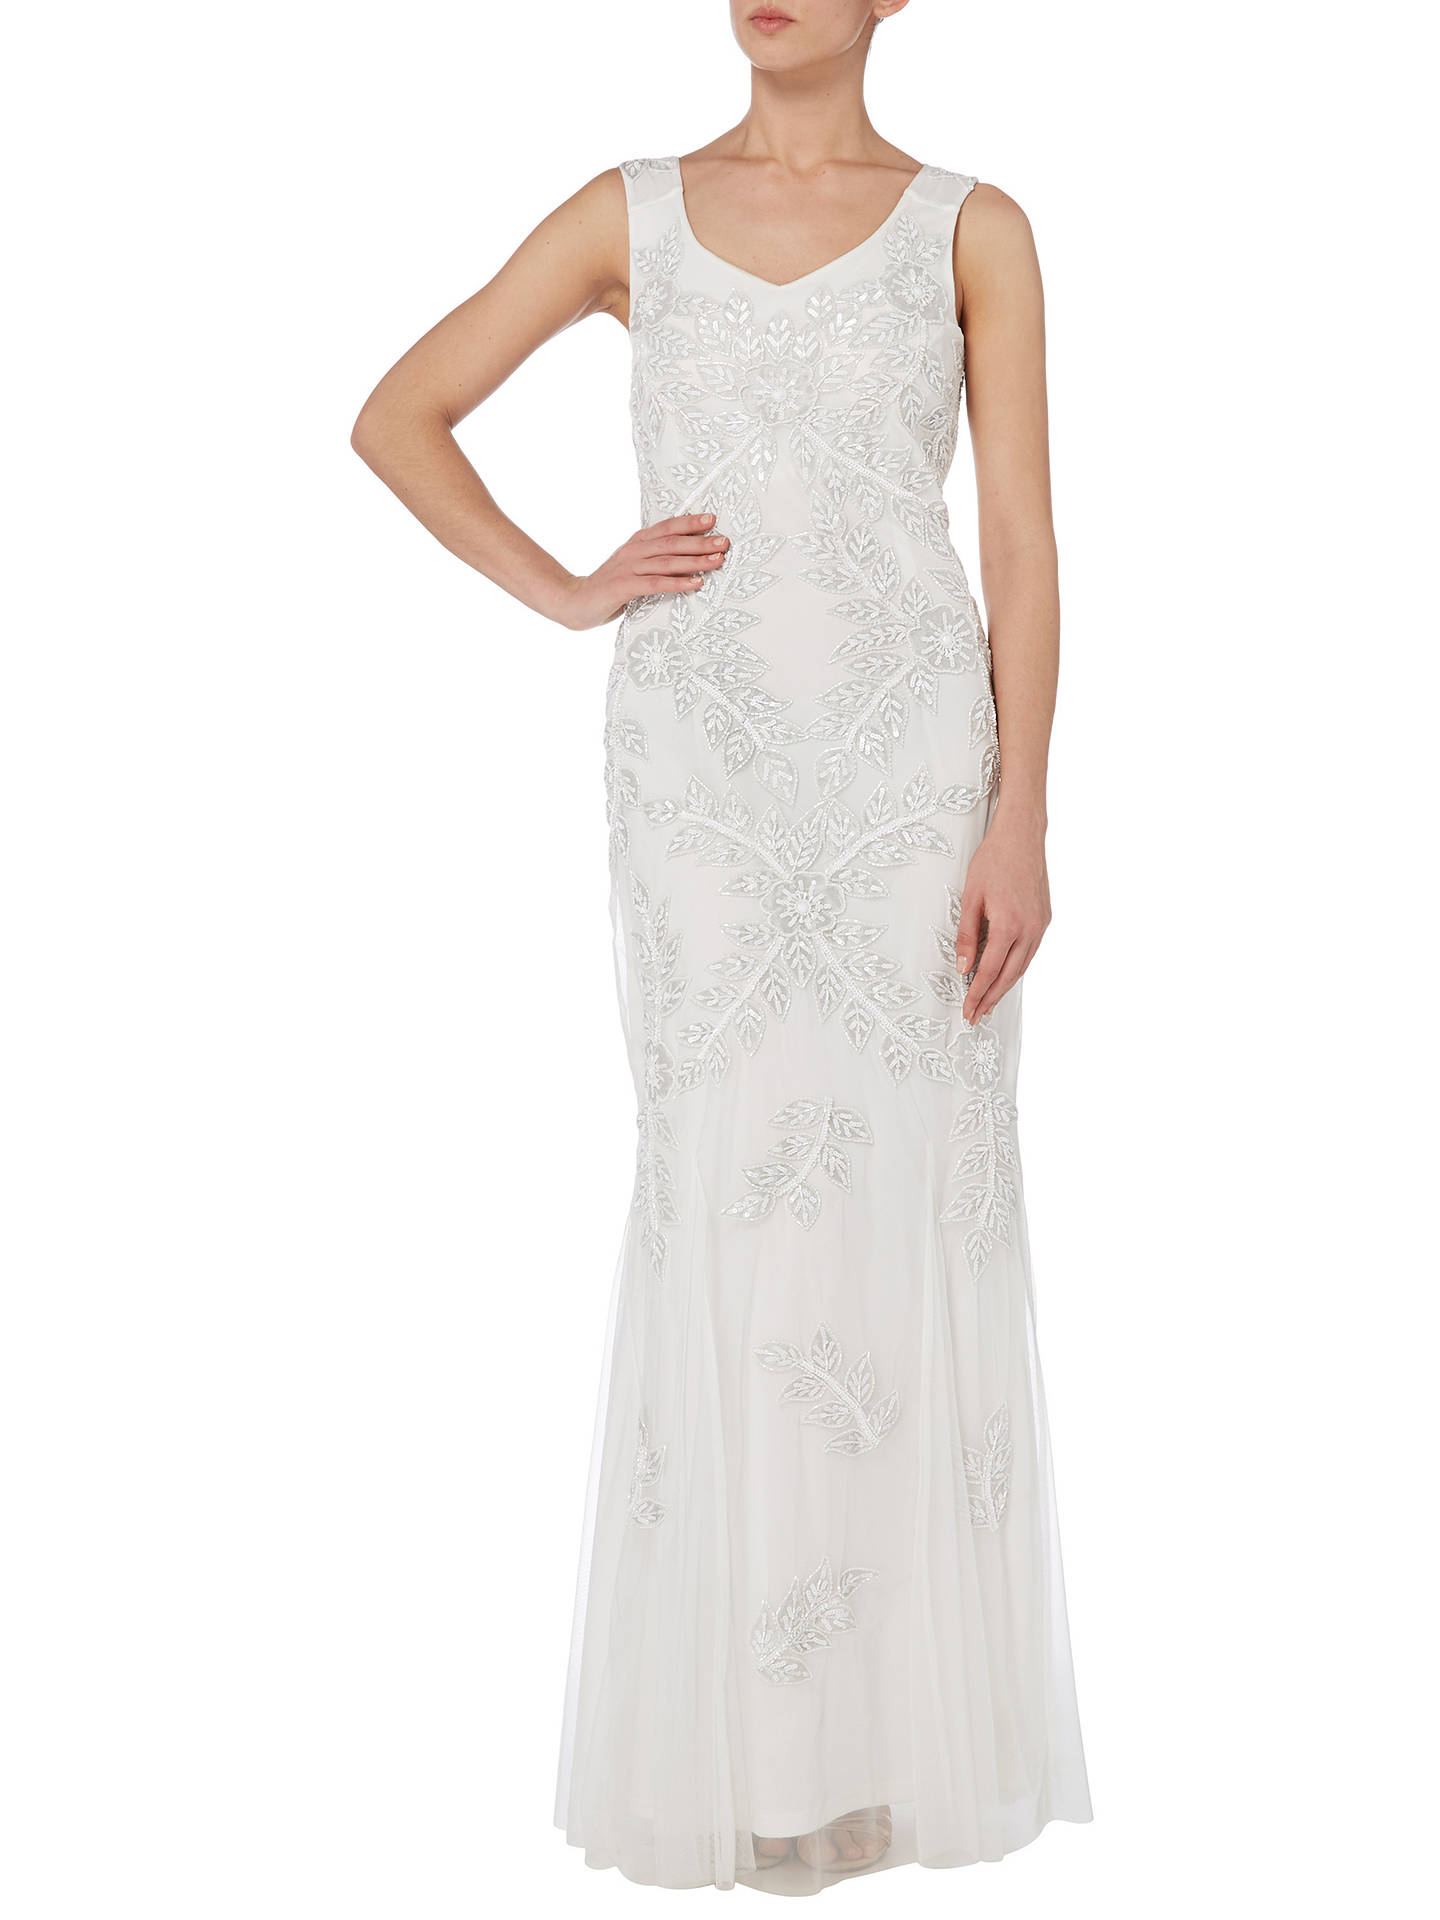 Buy Raishma Floral Embellished Gown, White, 8 Online at johnlewis.com